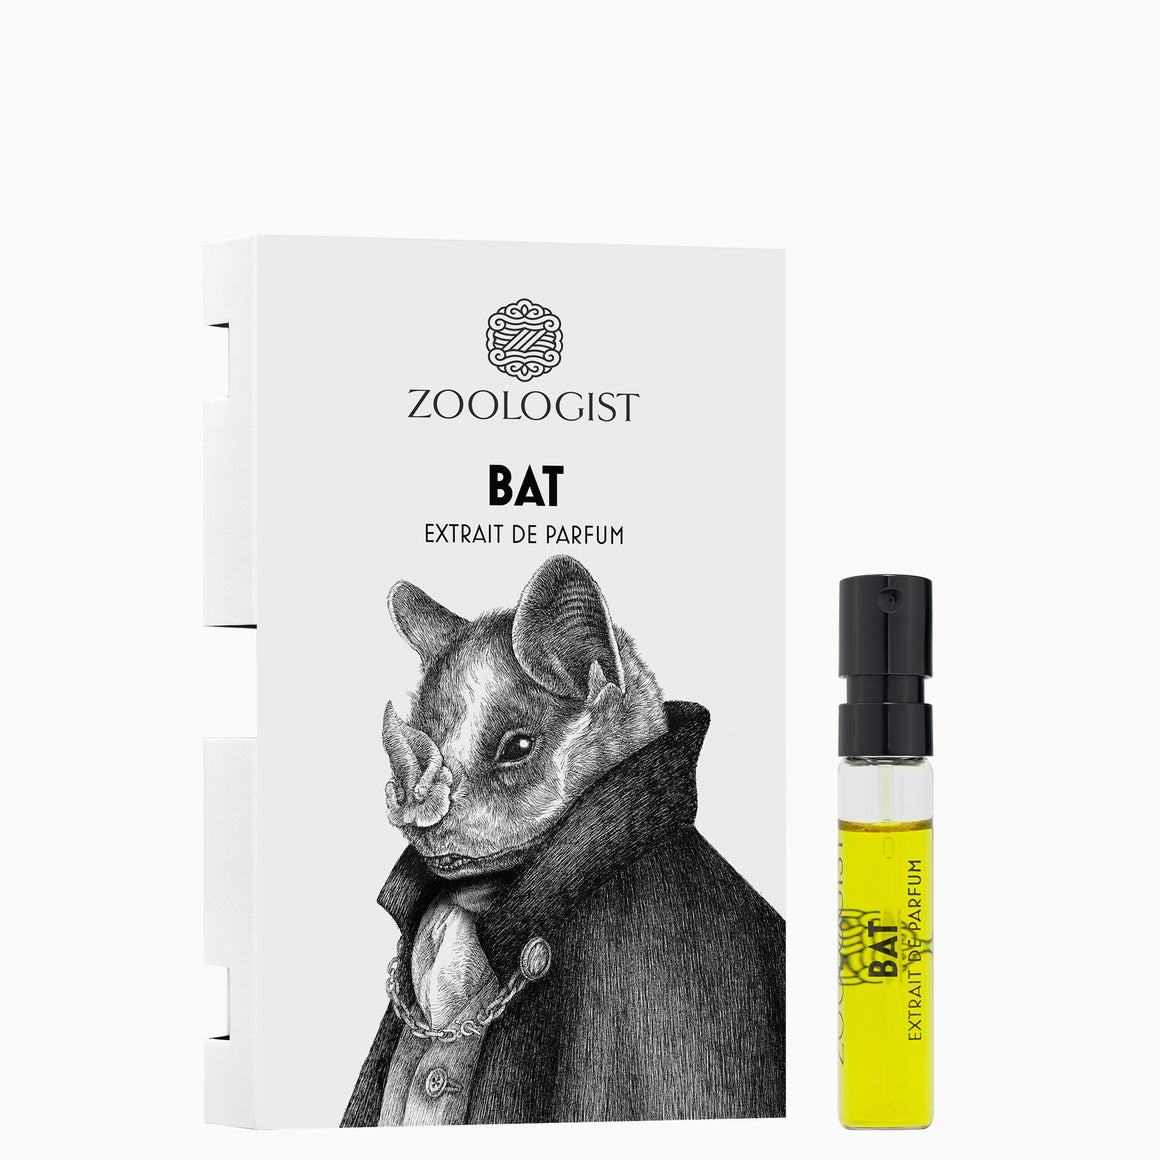 Zoologist Bat (2020) Sample